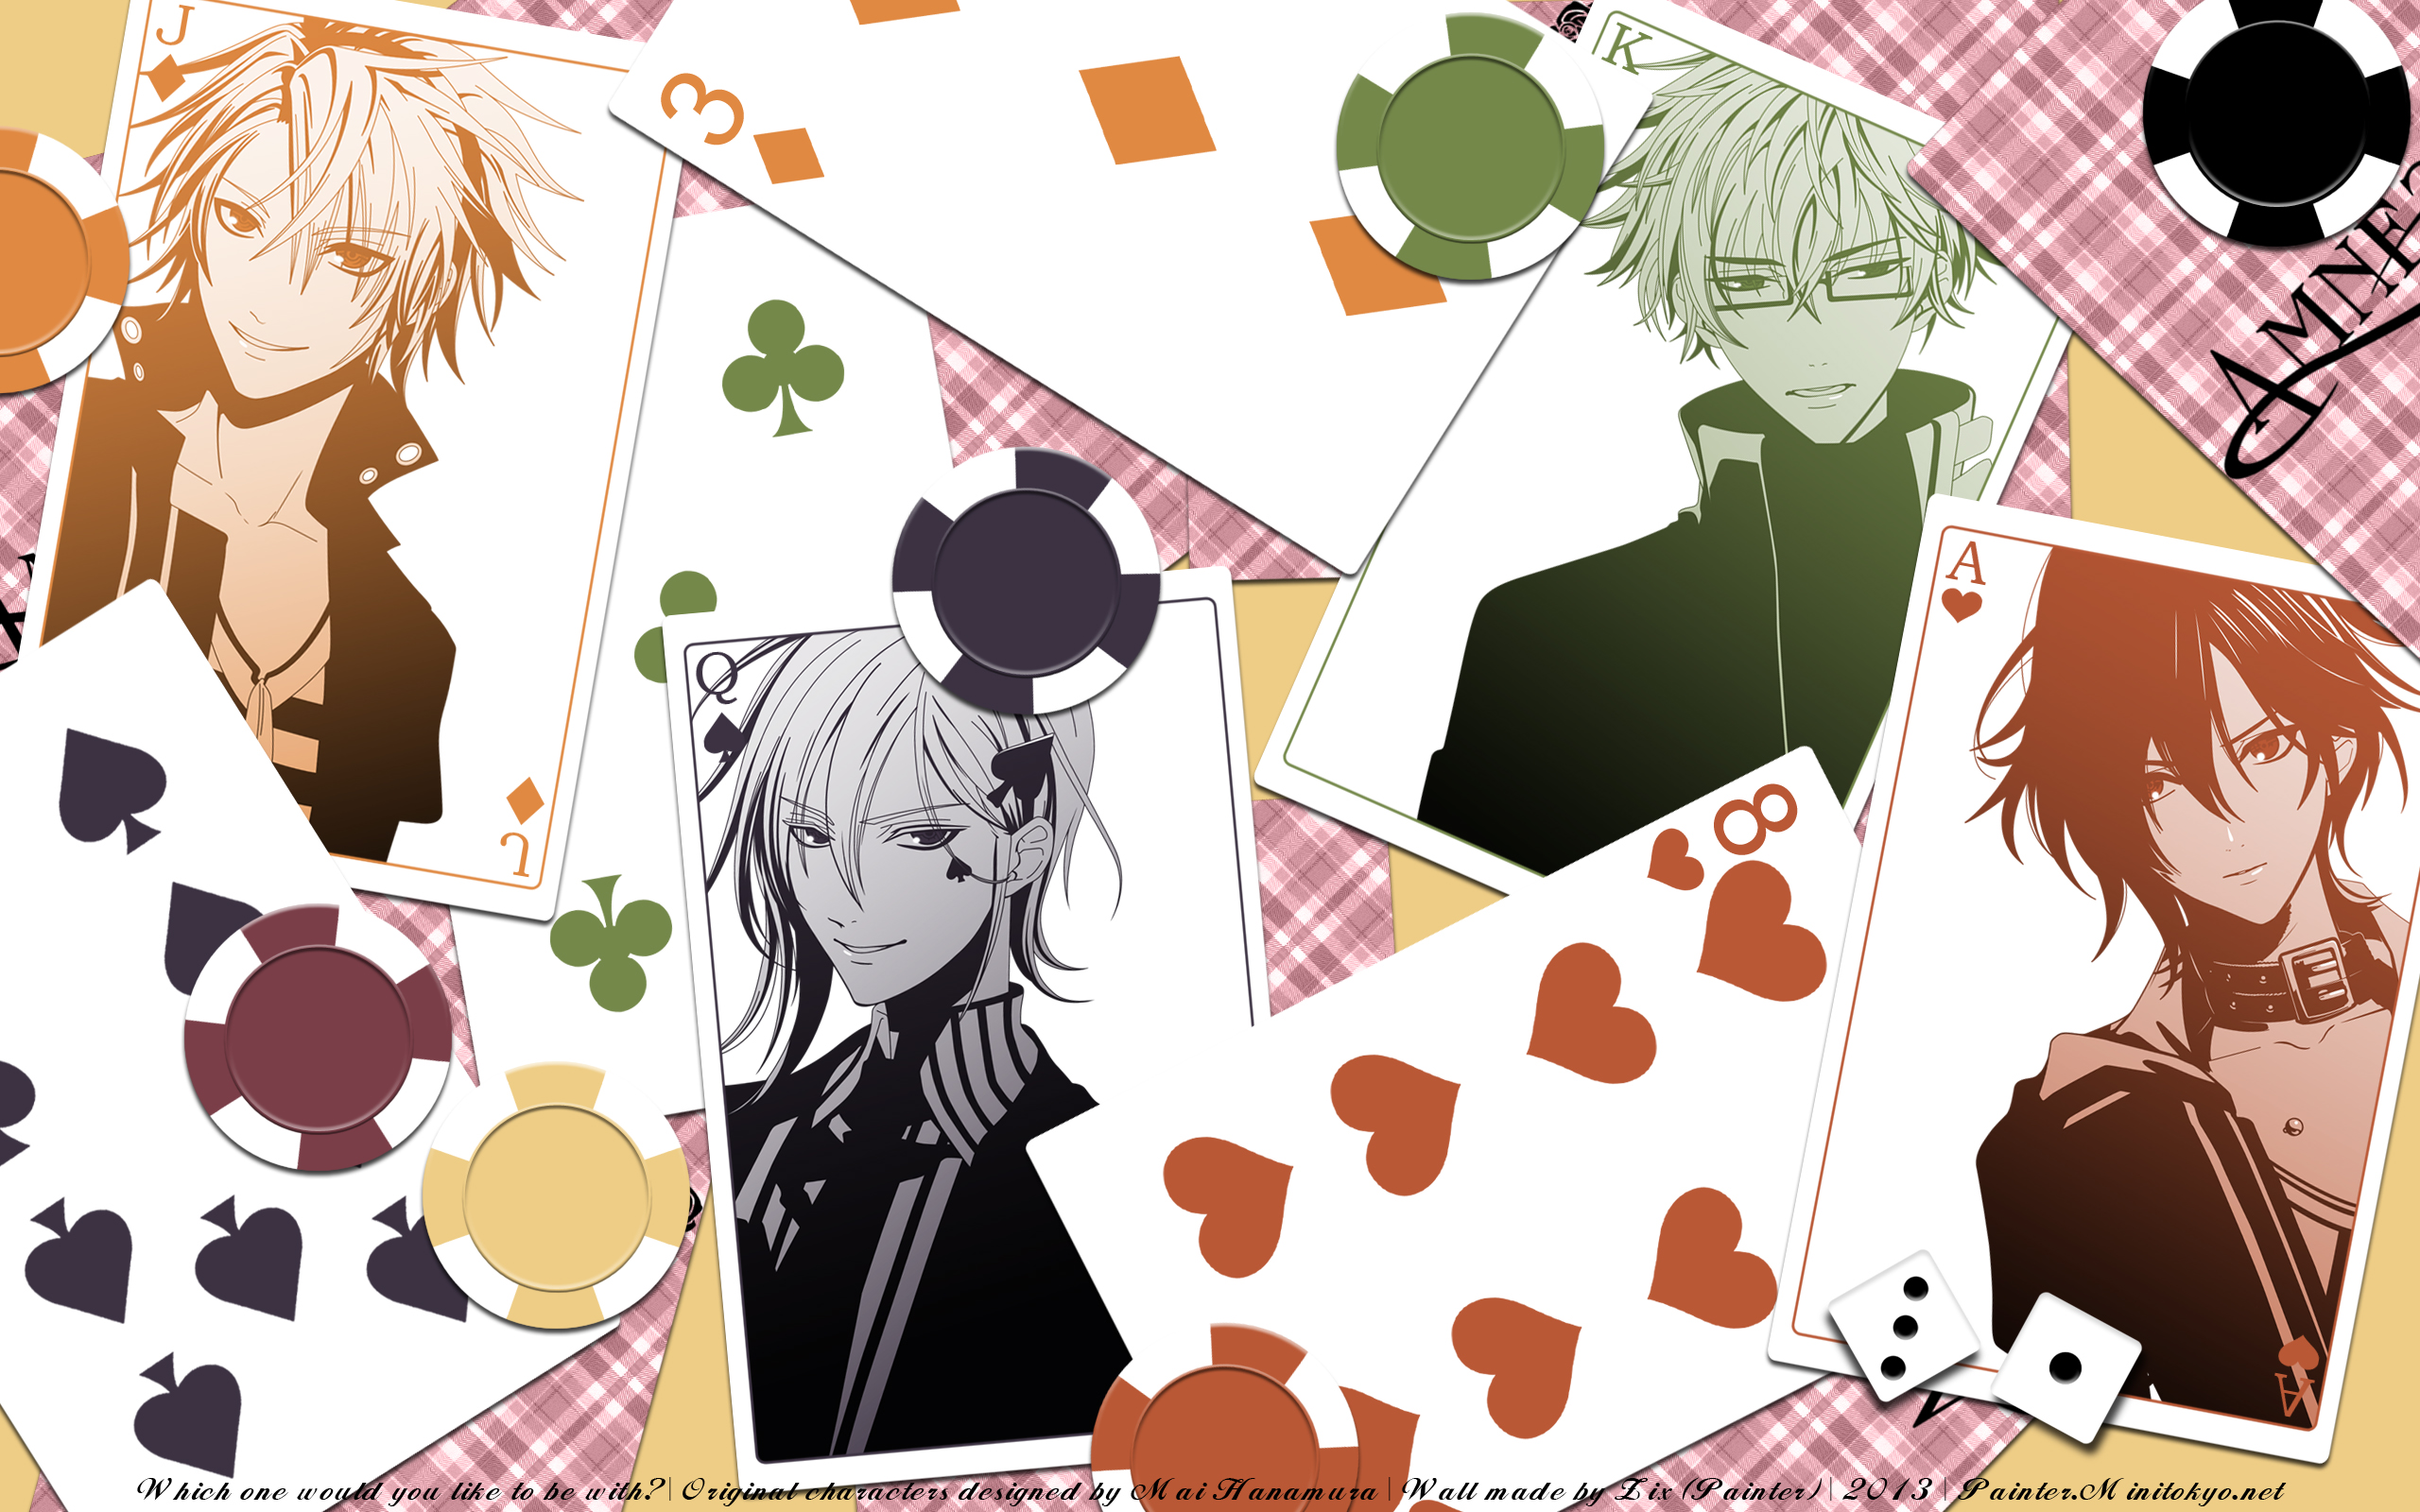 Amnesia Wallpaper Which One Would You Like To Be With Minitokyo